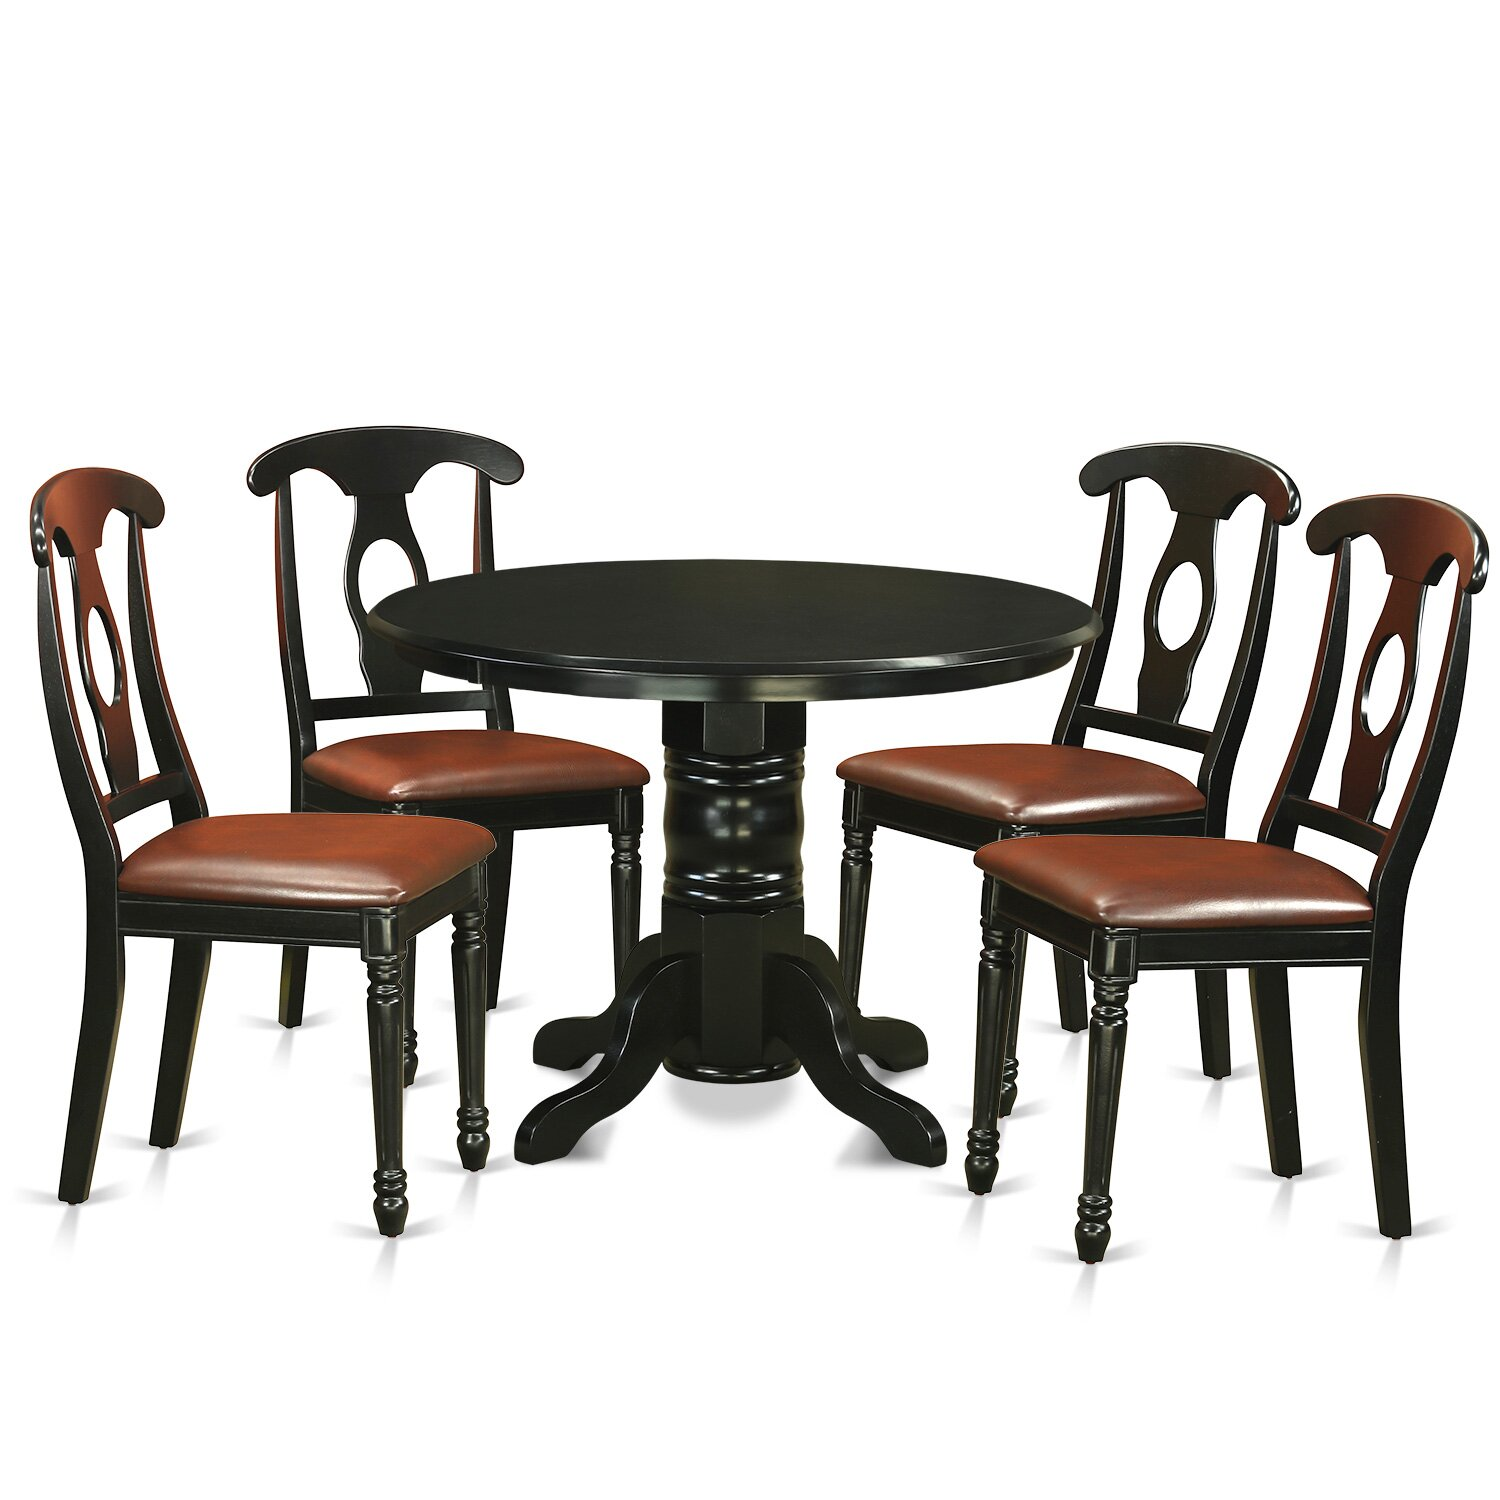 East west shelton 5 piece dining set reviews wayfair for 5 piece dining set